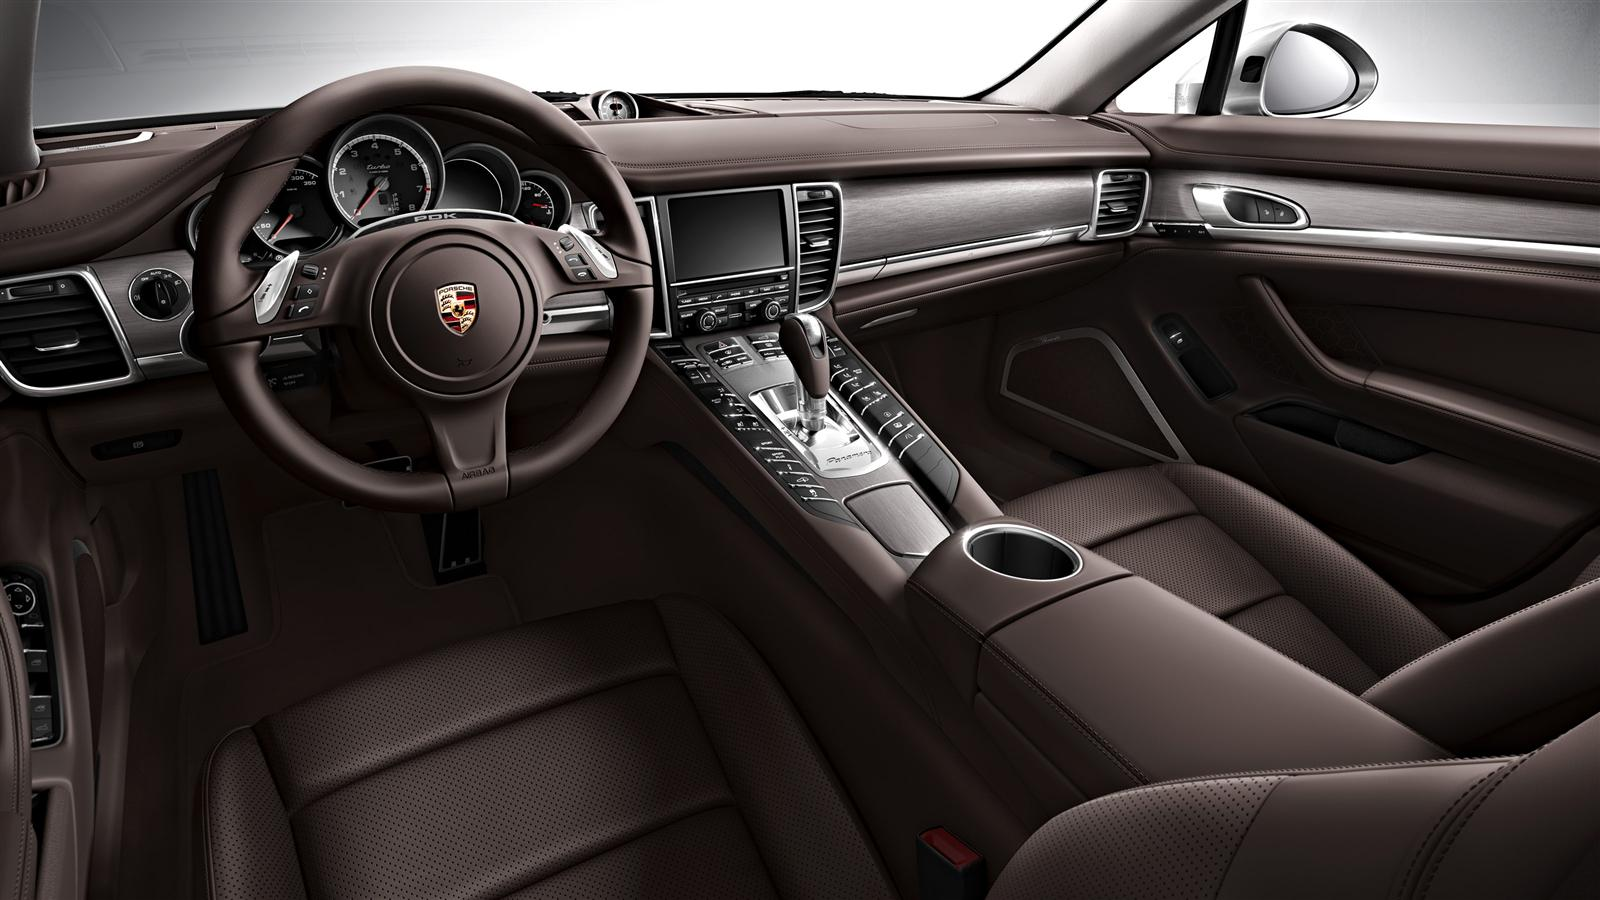 porsche panamera turbo s 907 specs 2013 2014 2015 2016 autoevolution. Black Bedroom Furniture Sets. Home Design Ideas